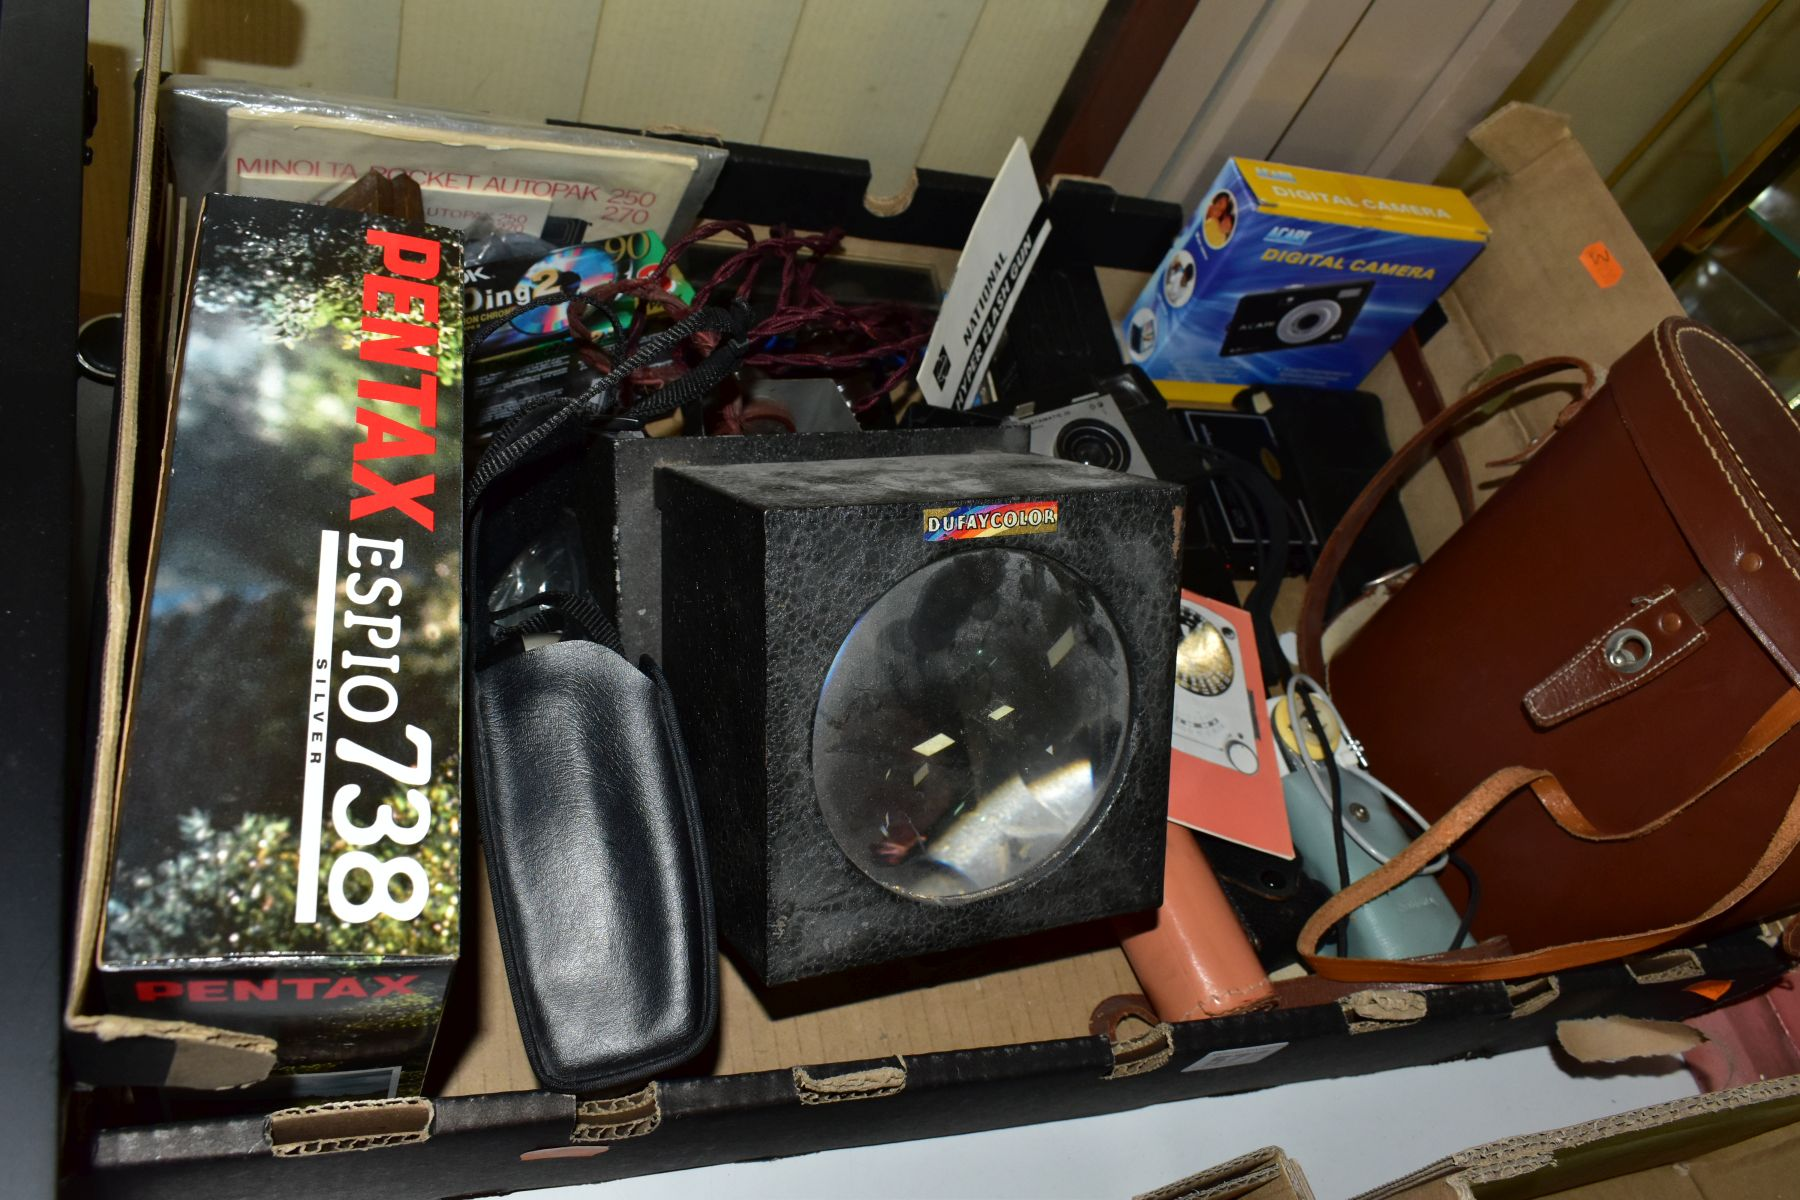 PHOTOGRAPHIC EQUIPMENT, etc, to include a Minolta Auto Pak 270 110 film camera with leather case and - Image 6 of 6